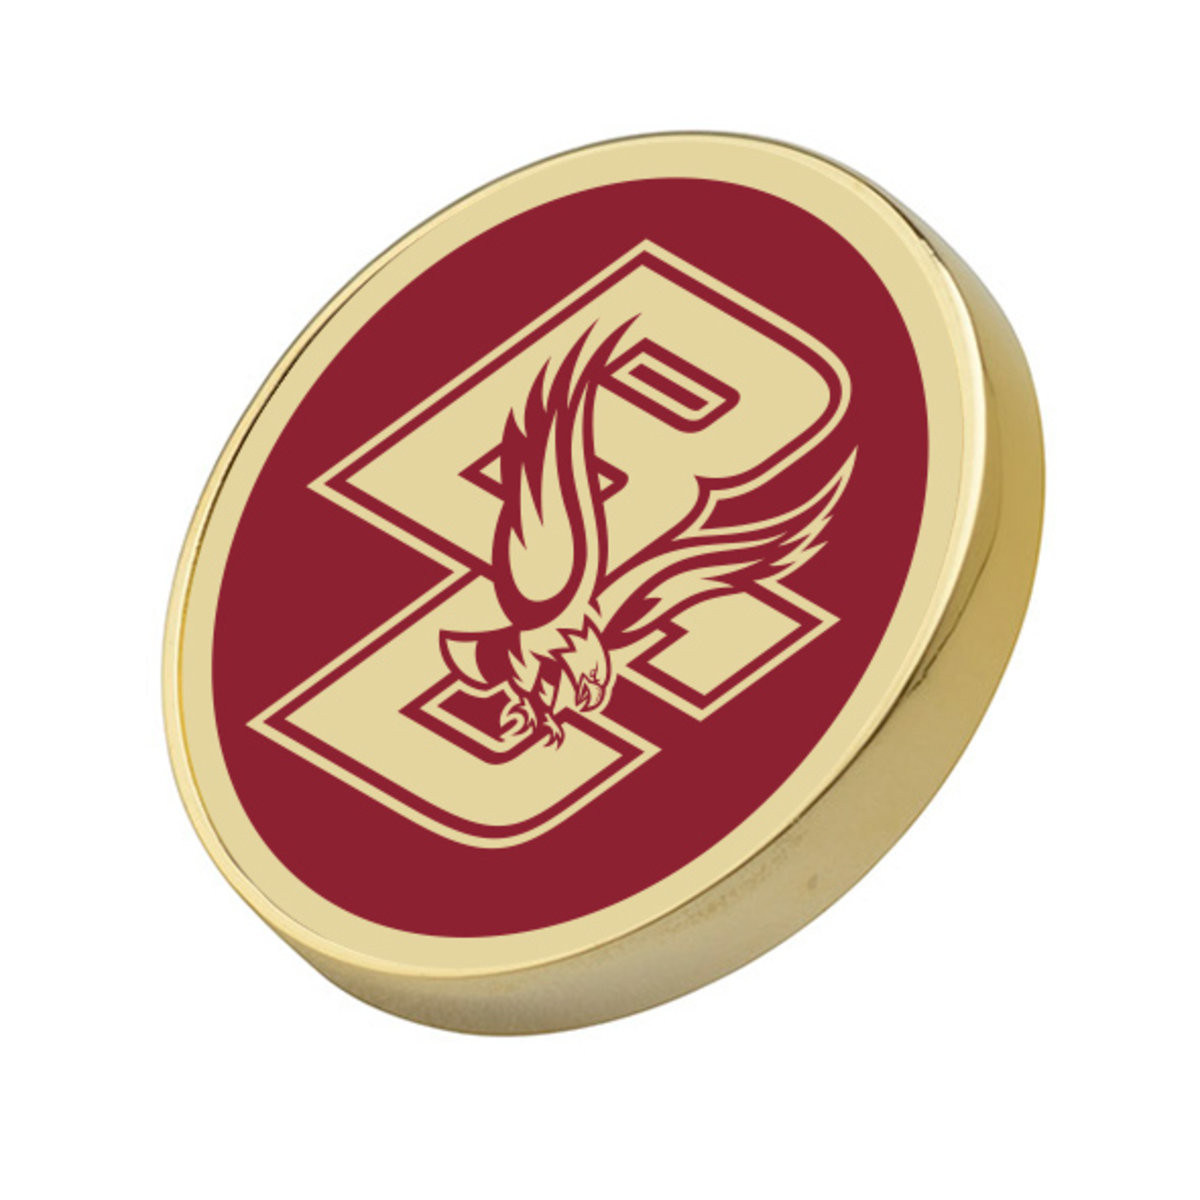 Pins Boton  Boston College Enamel Lapel Pin at M LaHart & Co